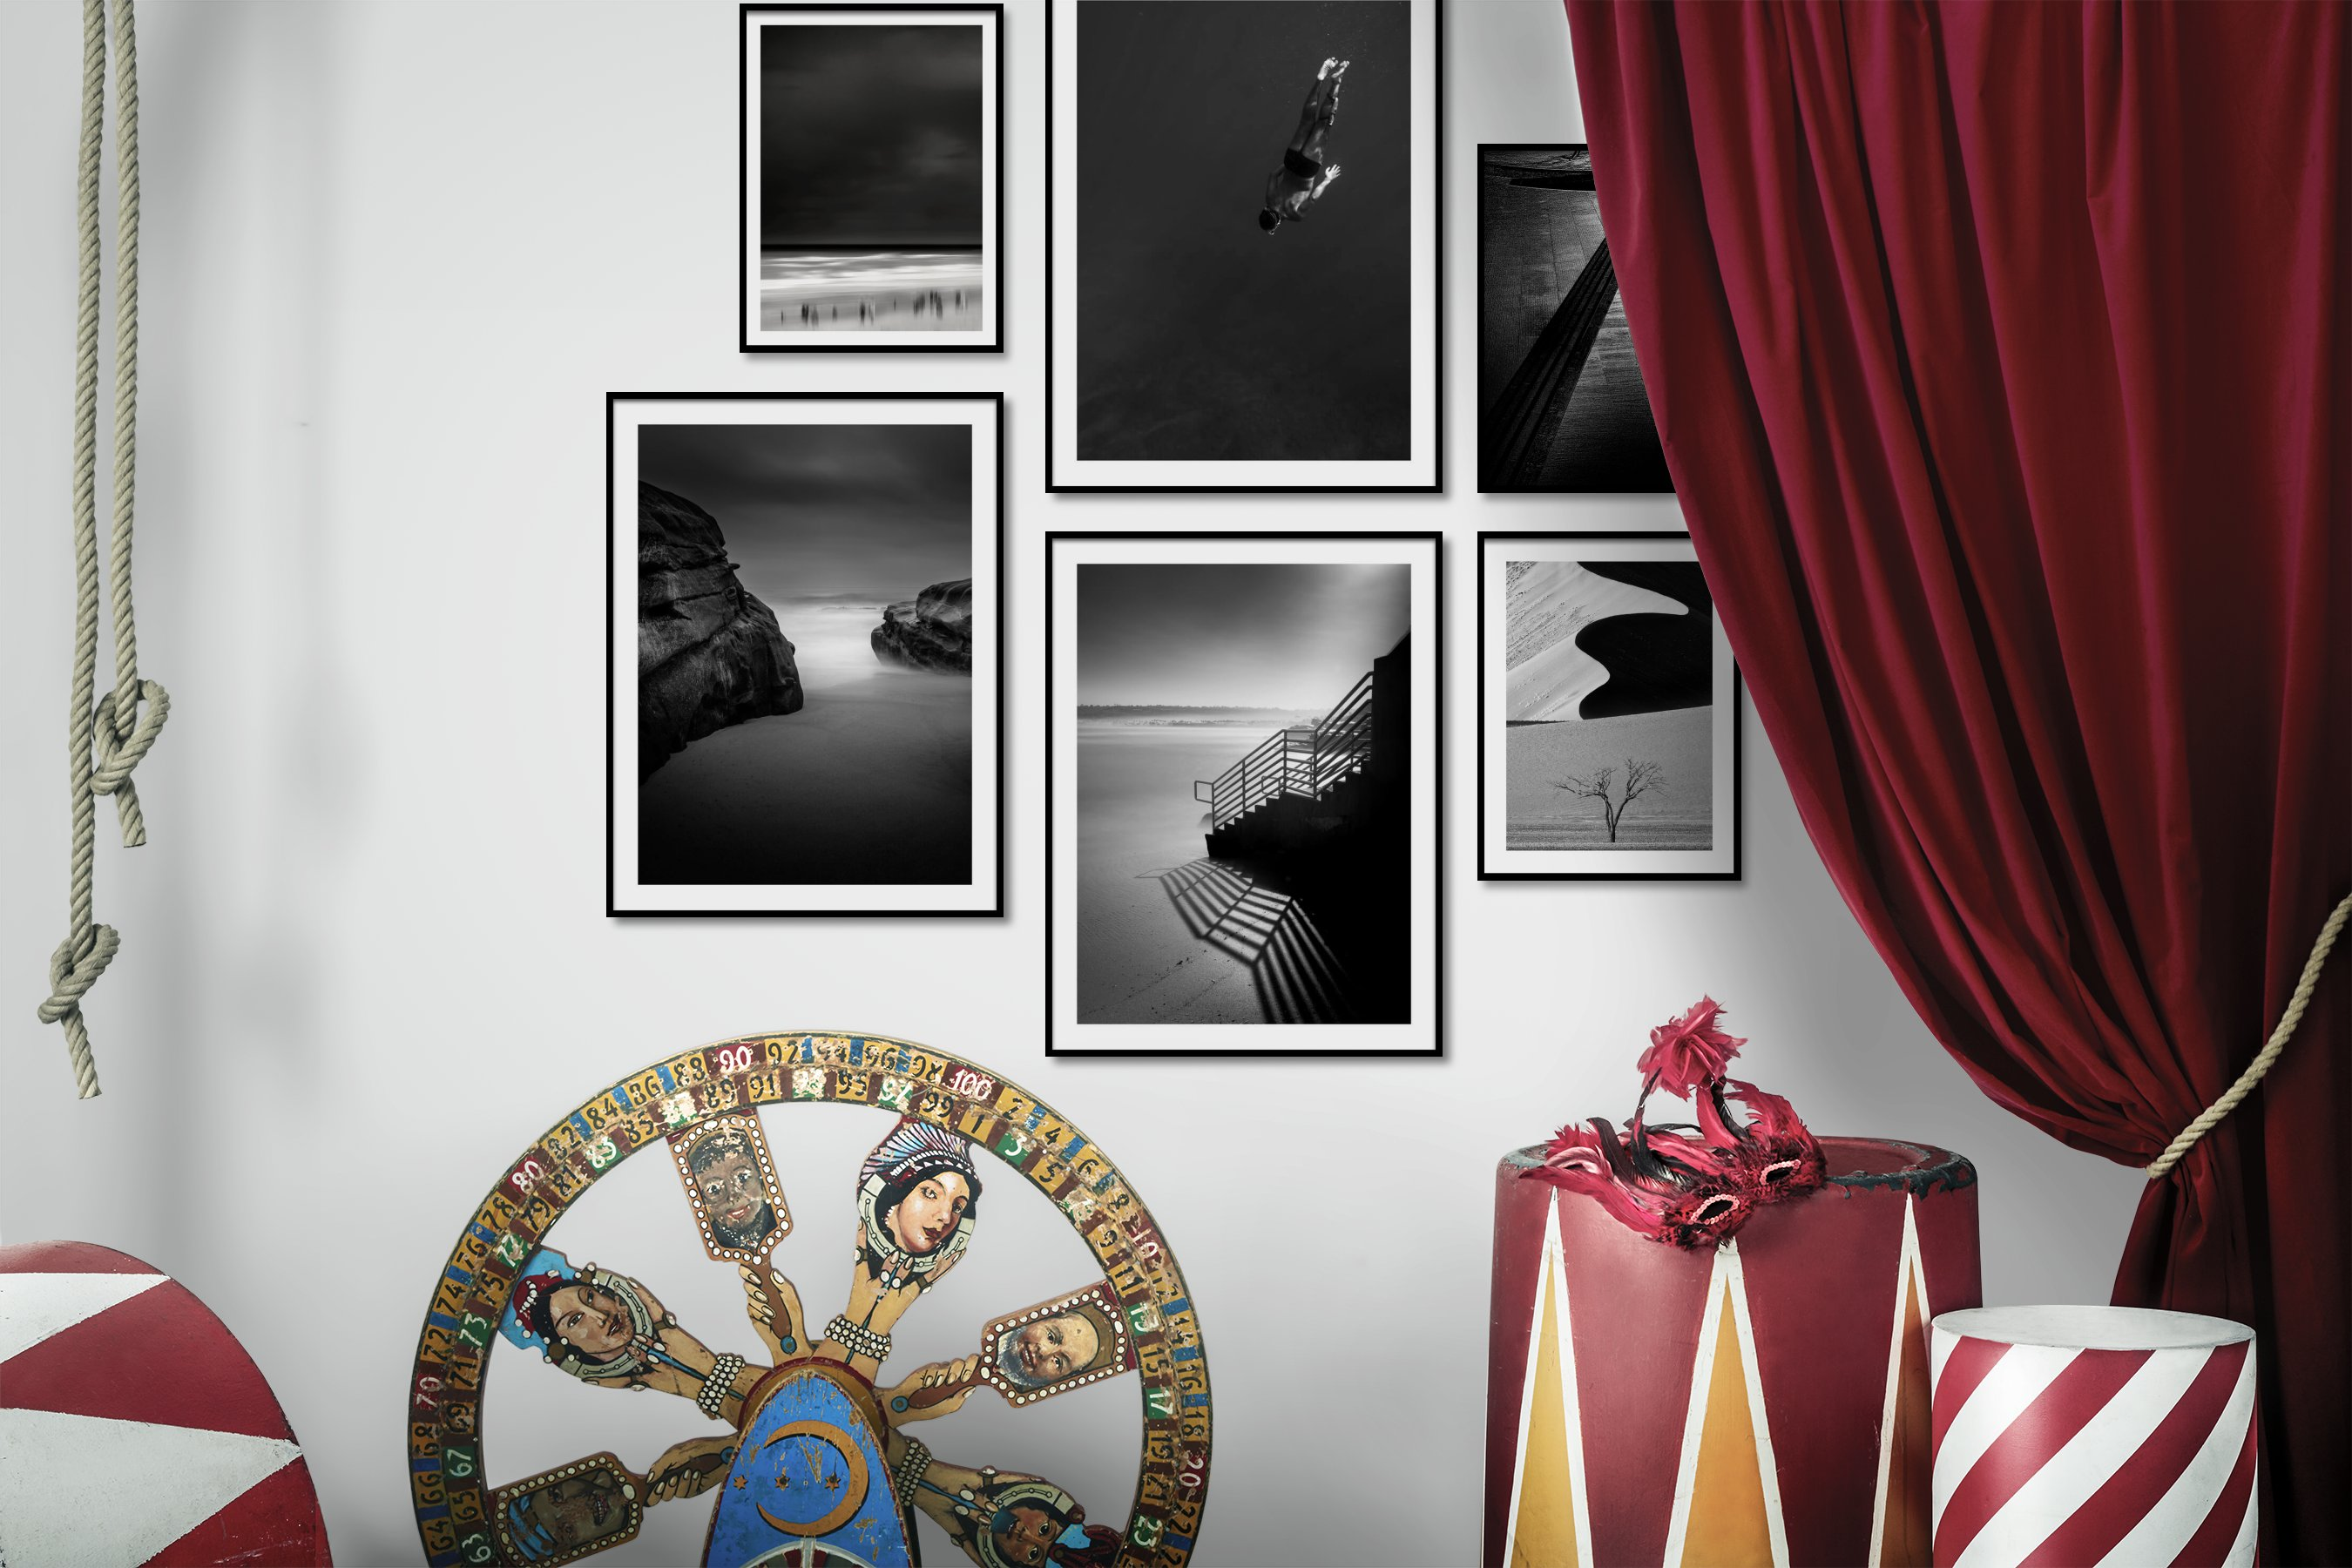 Gallery wall idea with six framed pictures arranged on a wall depicting Black & White, For the Minimalist, Beach & Water, For the Moderate, and Nature